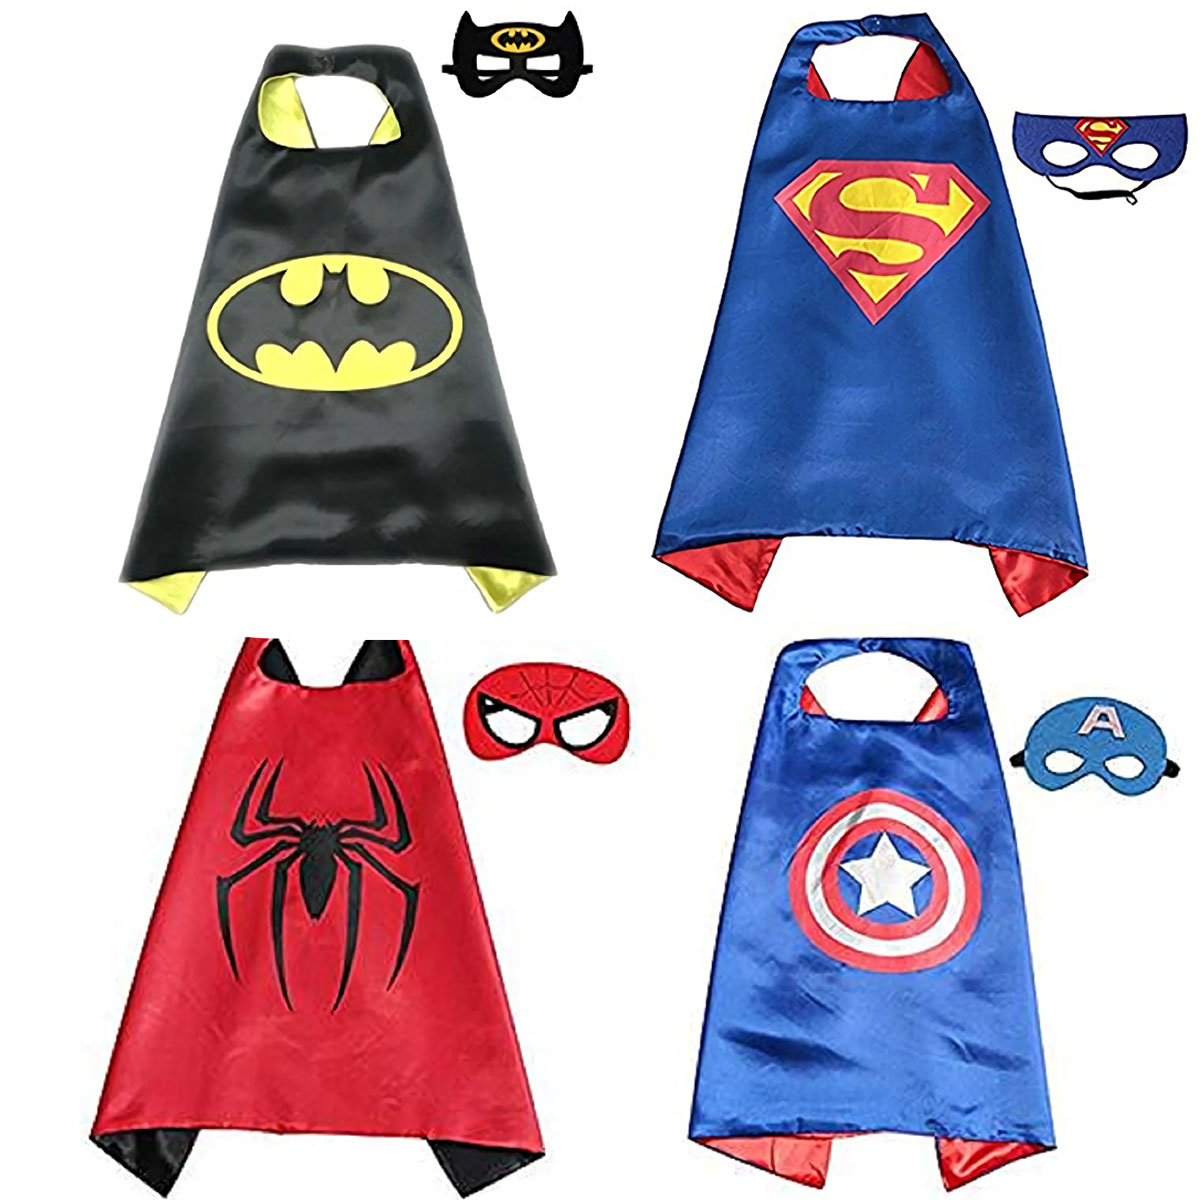 【Best Gift for Birthday Party】Toddlers Superhero Costumes 4Pcs Capes and Masks Costumes For Kids Boys